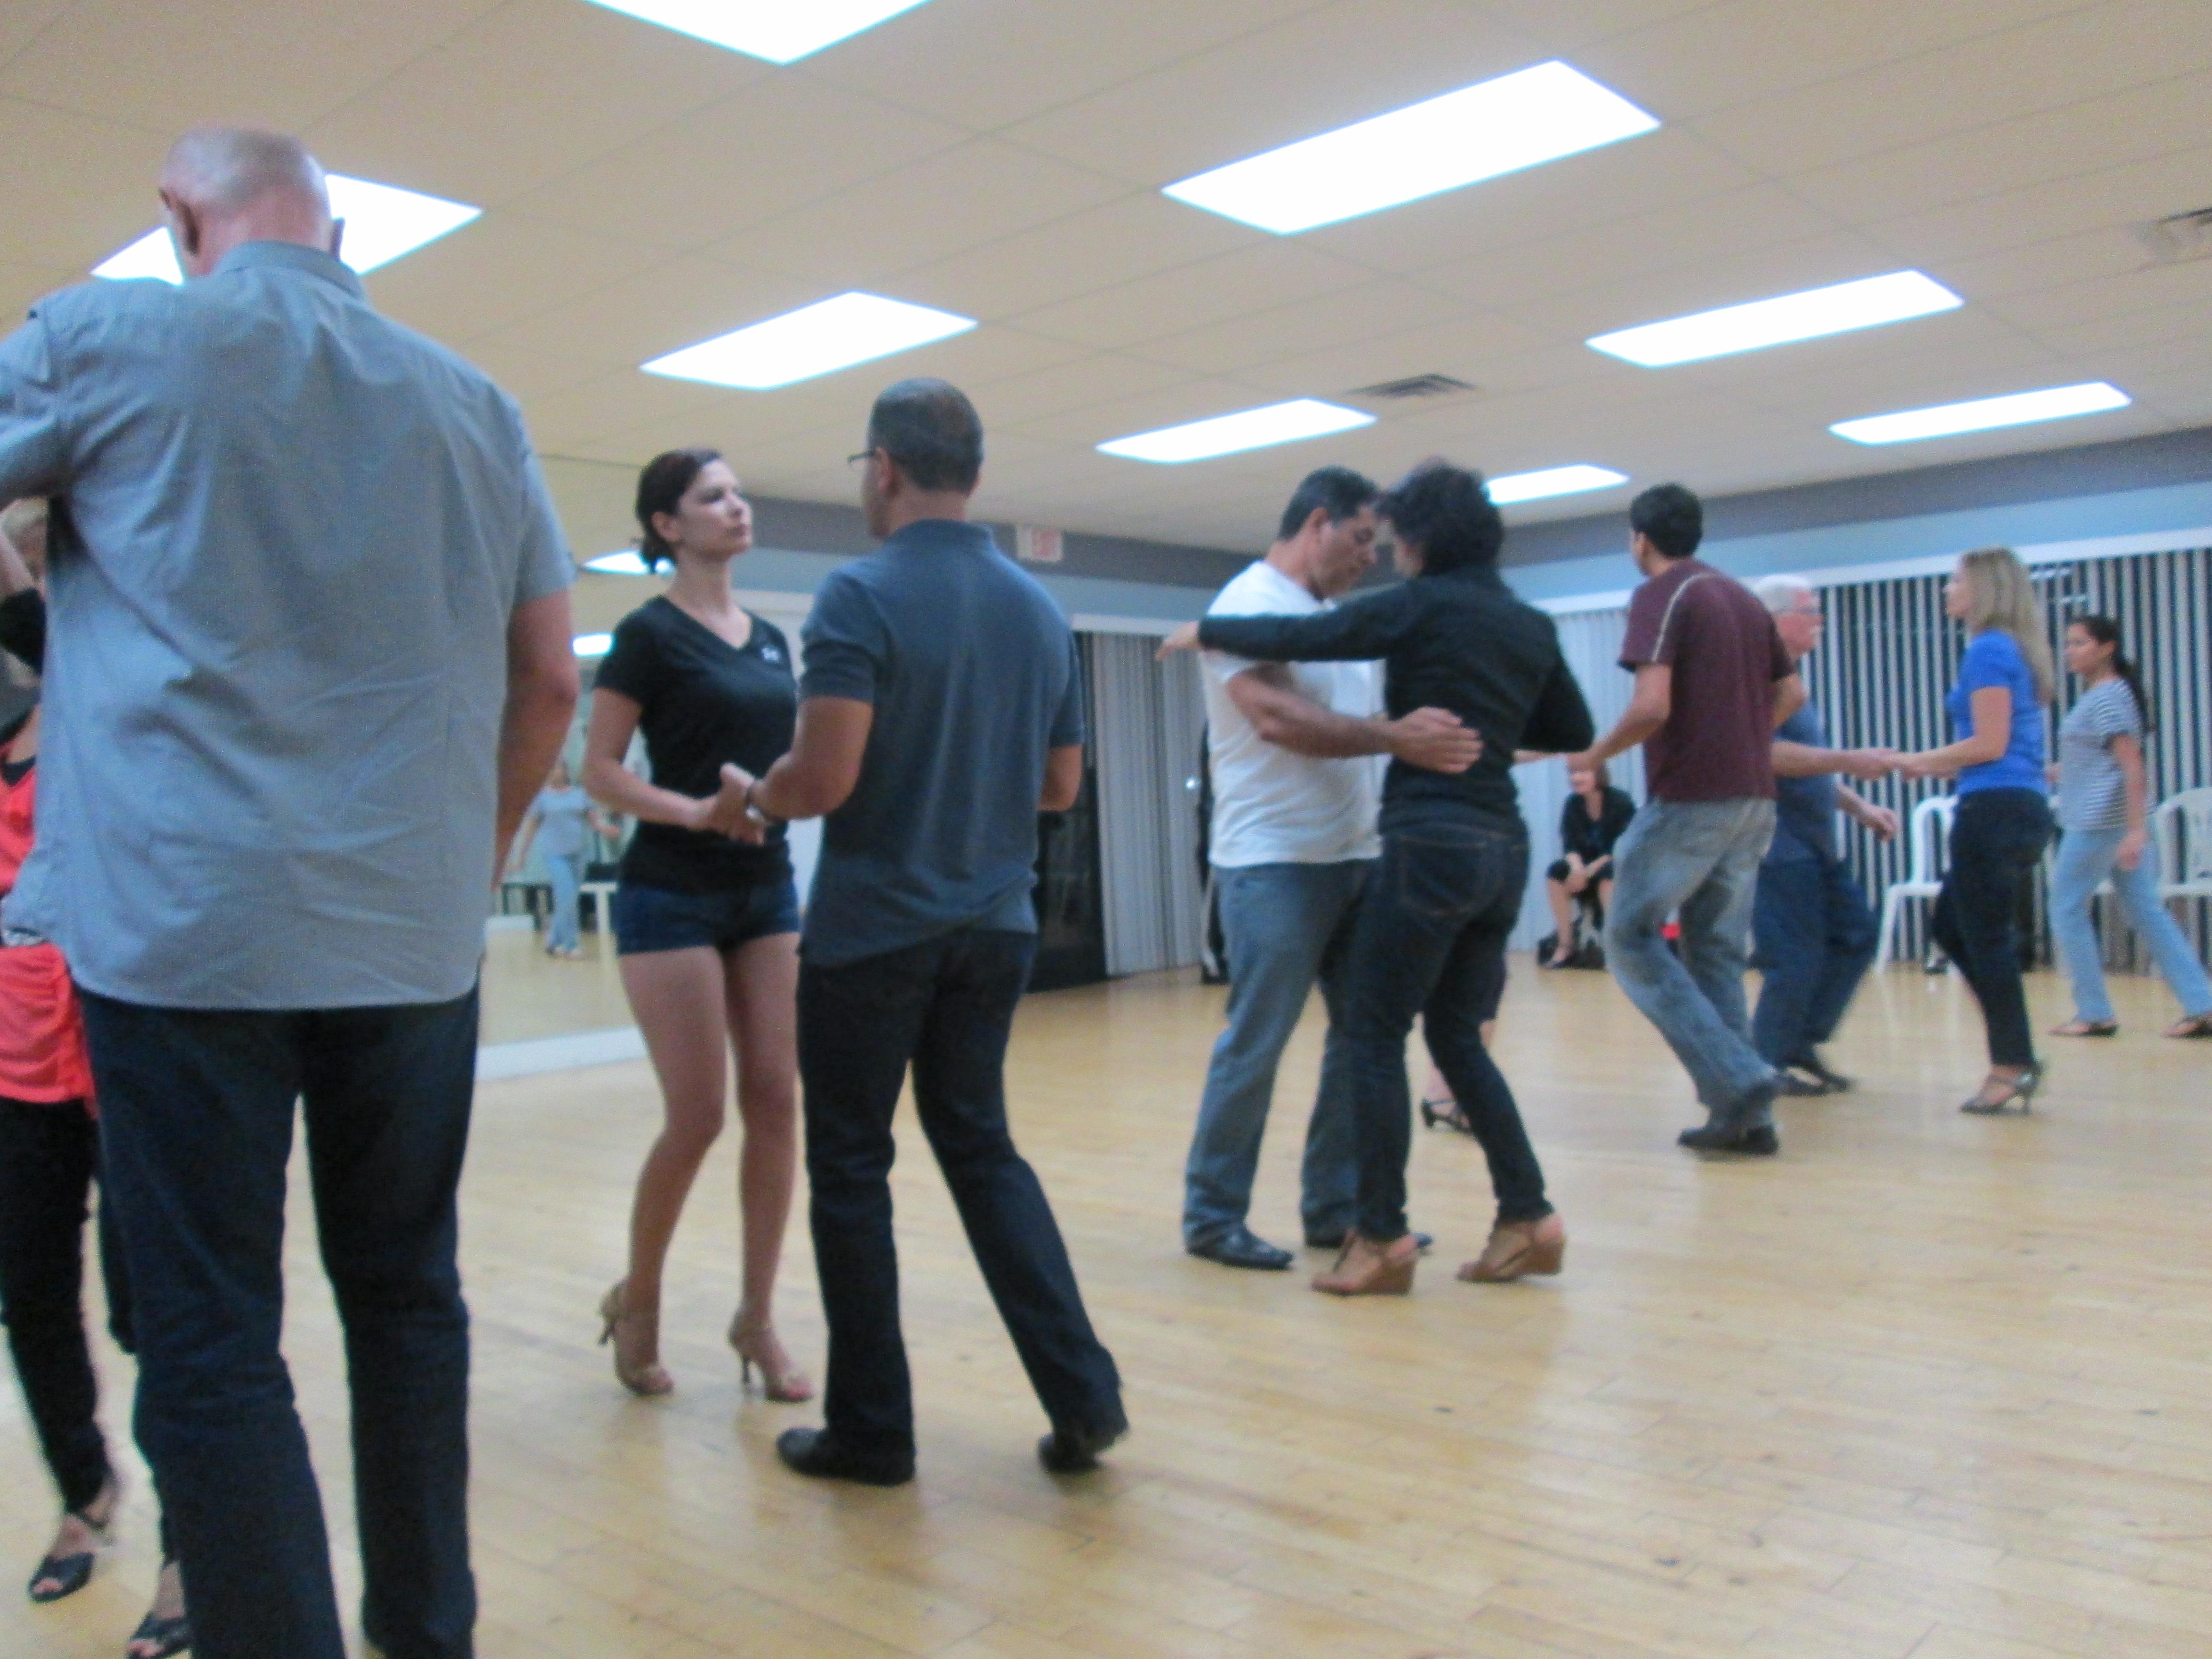 Salsa And Argentine Tango Dance Lessons